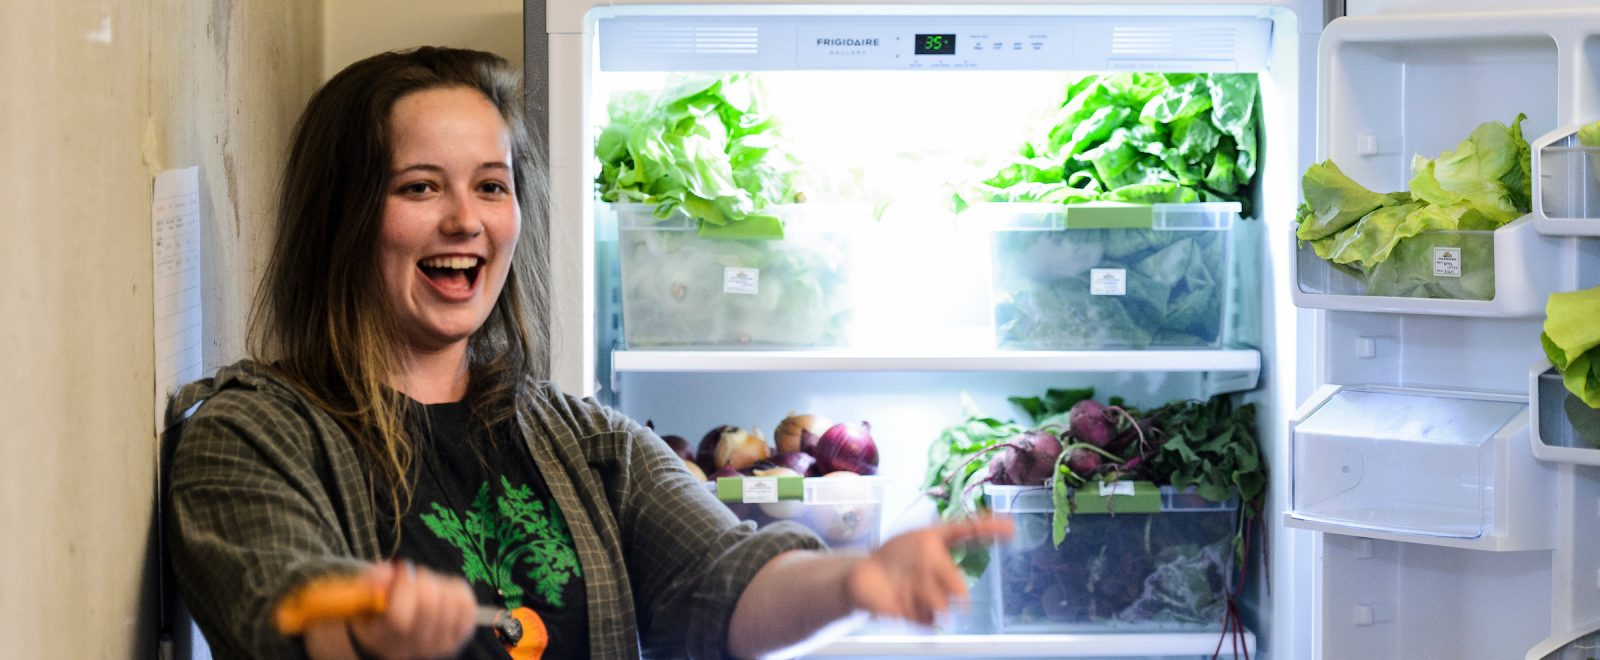 Hannah DePorter stands in front of the new refrigerator, door open displaying a bounty of fresh greens, onions, beets.